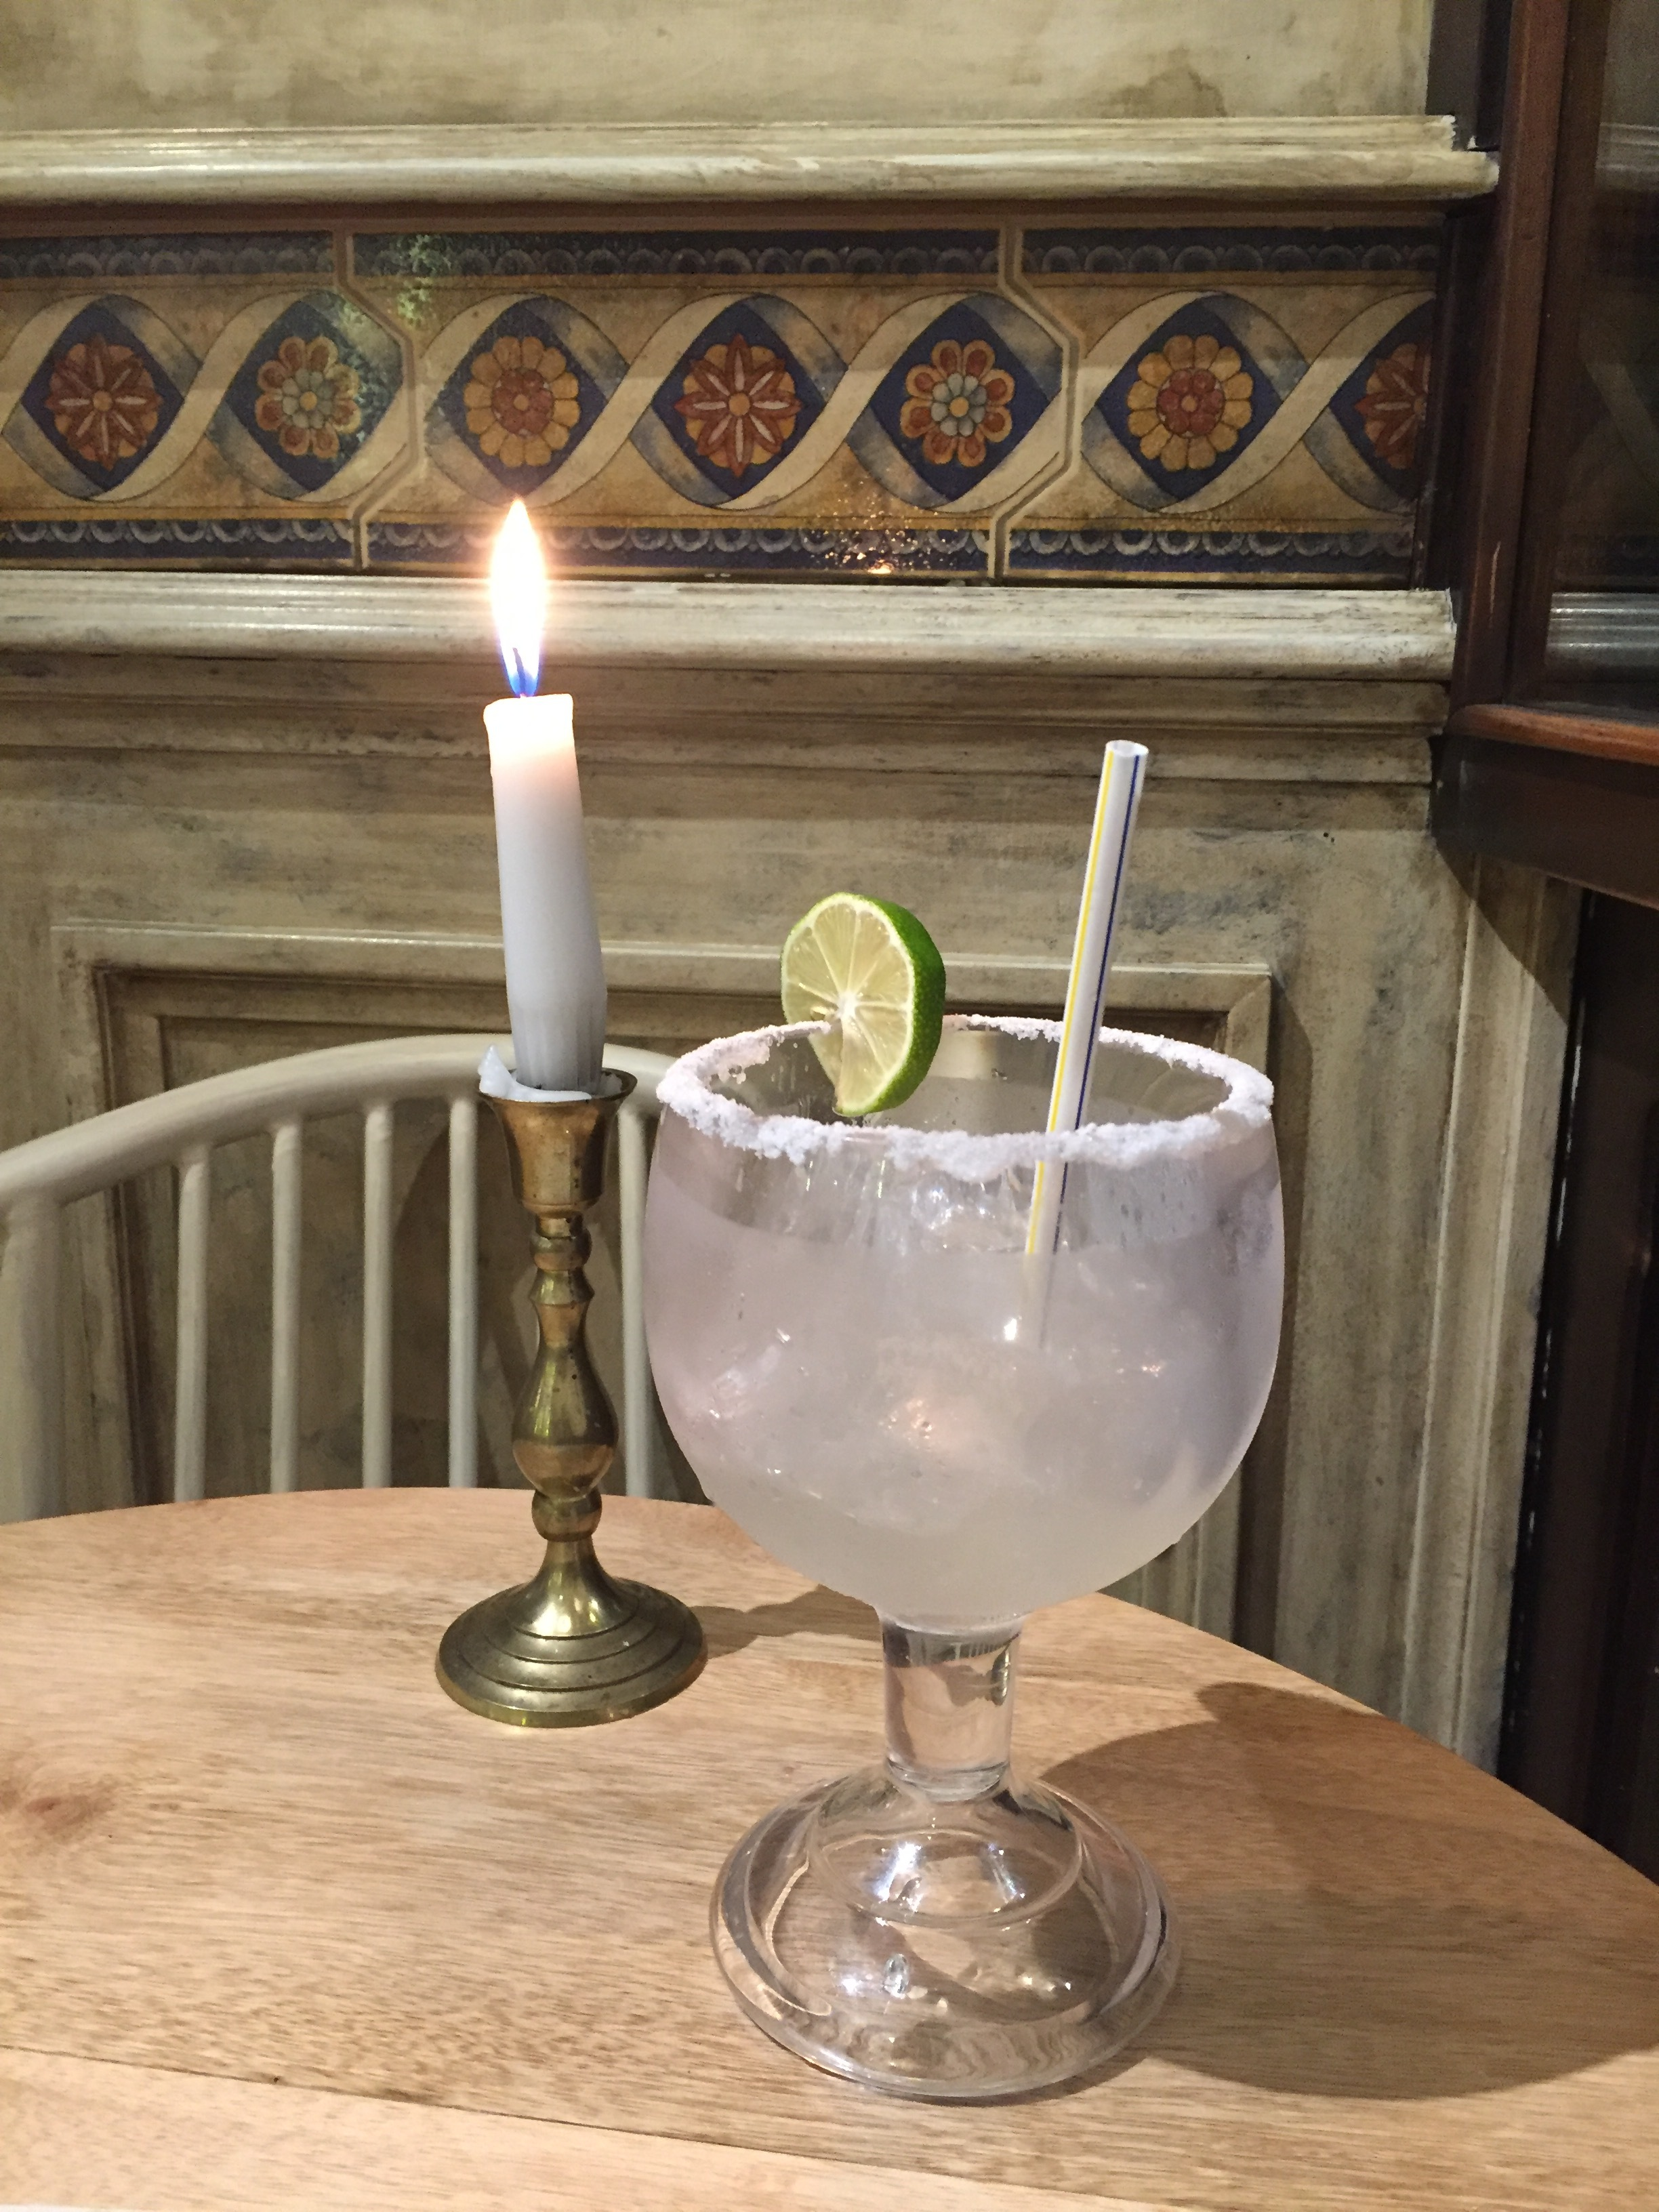 I celebrated my birthday in Cuenca with a super-sized Margarita, the best I'd tasted so far on my trip!